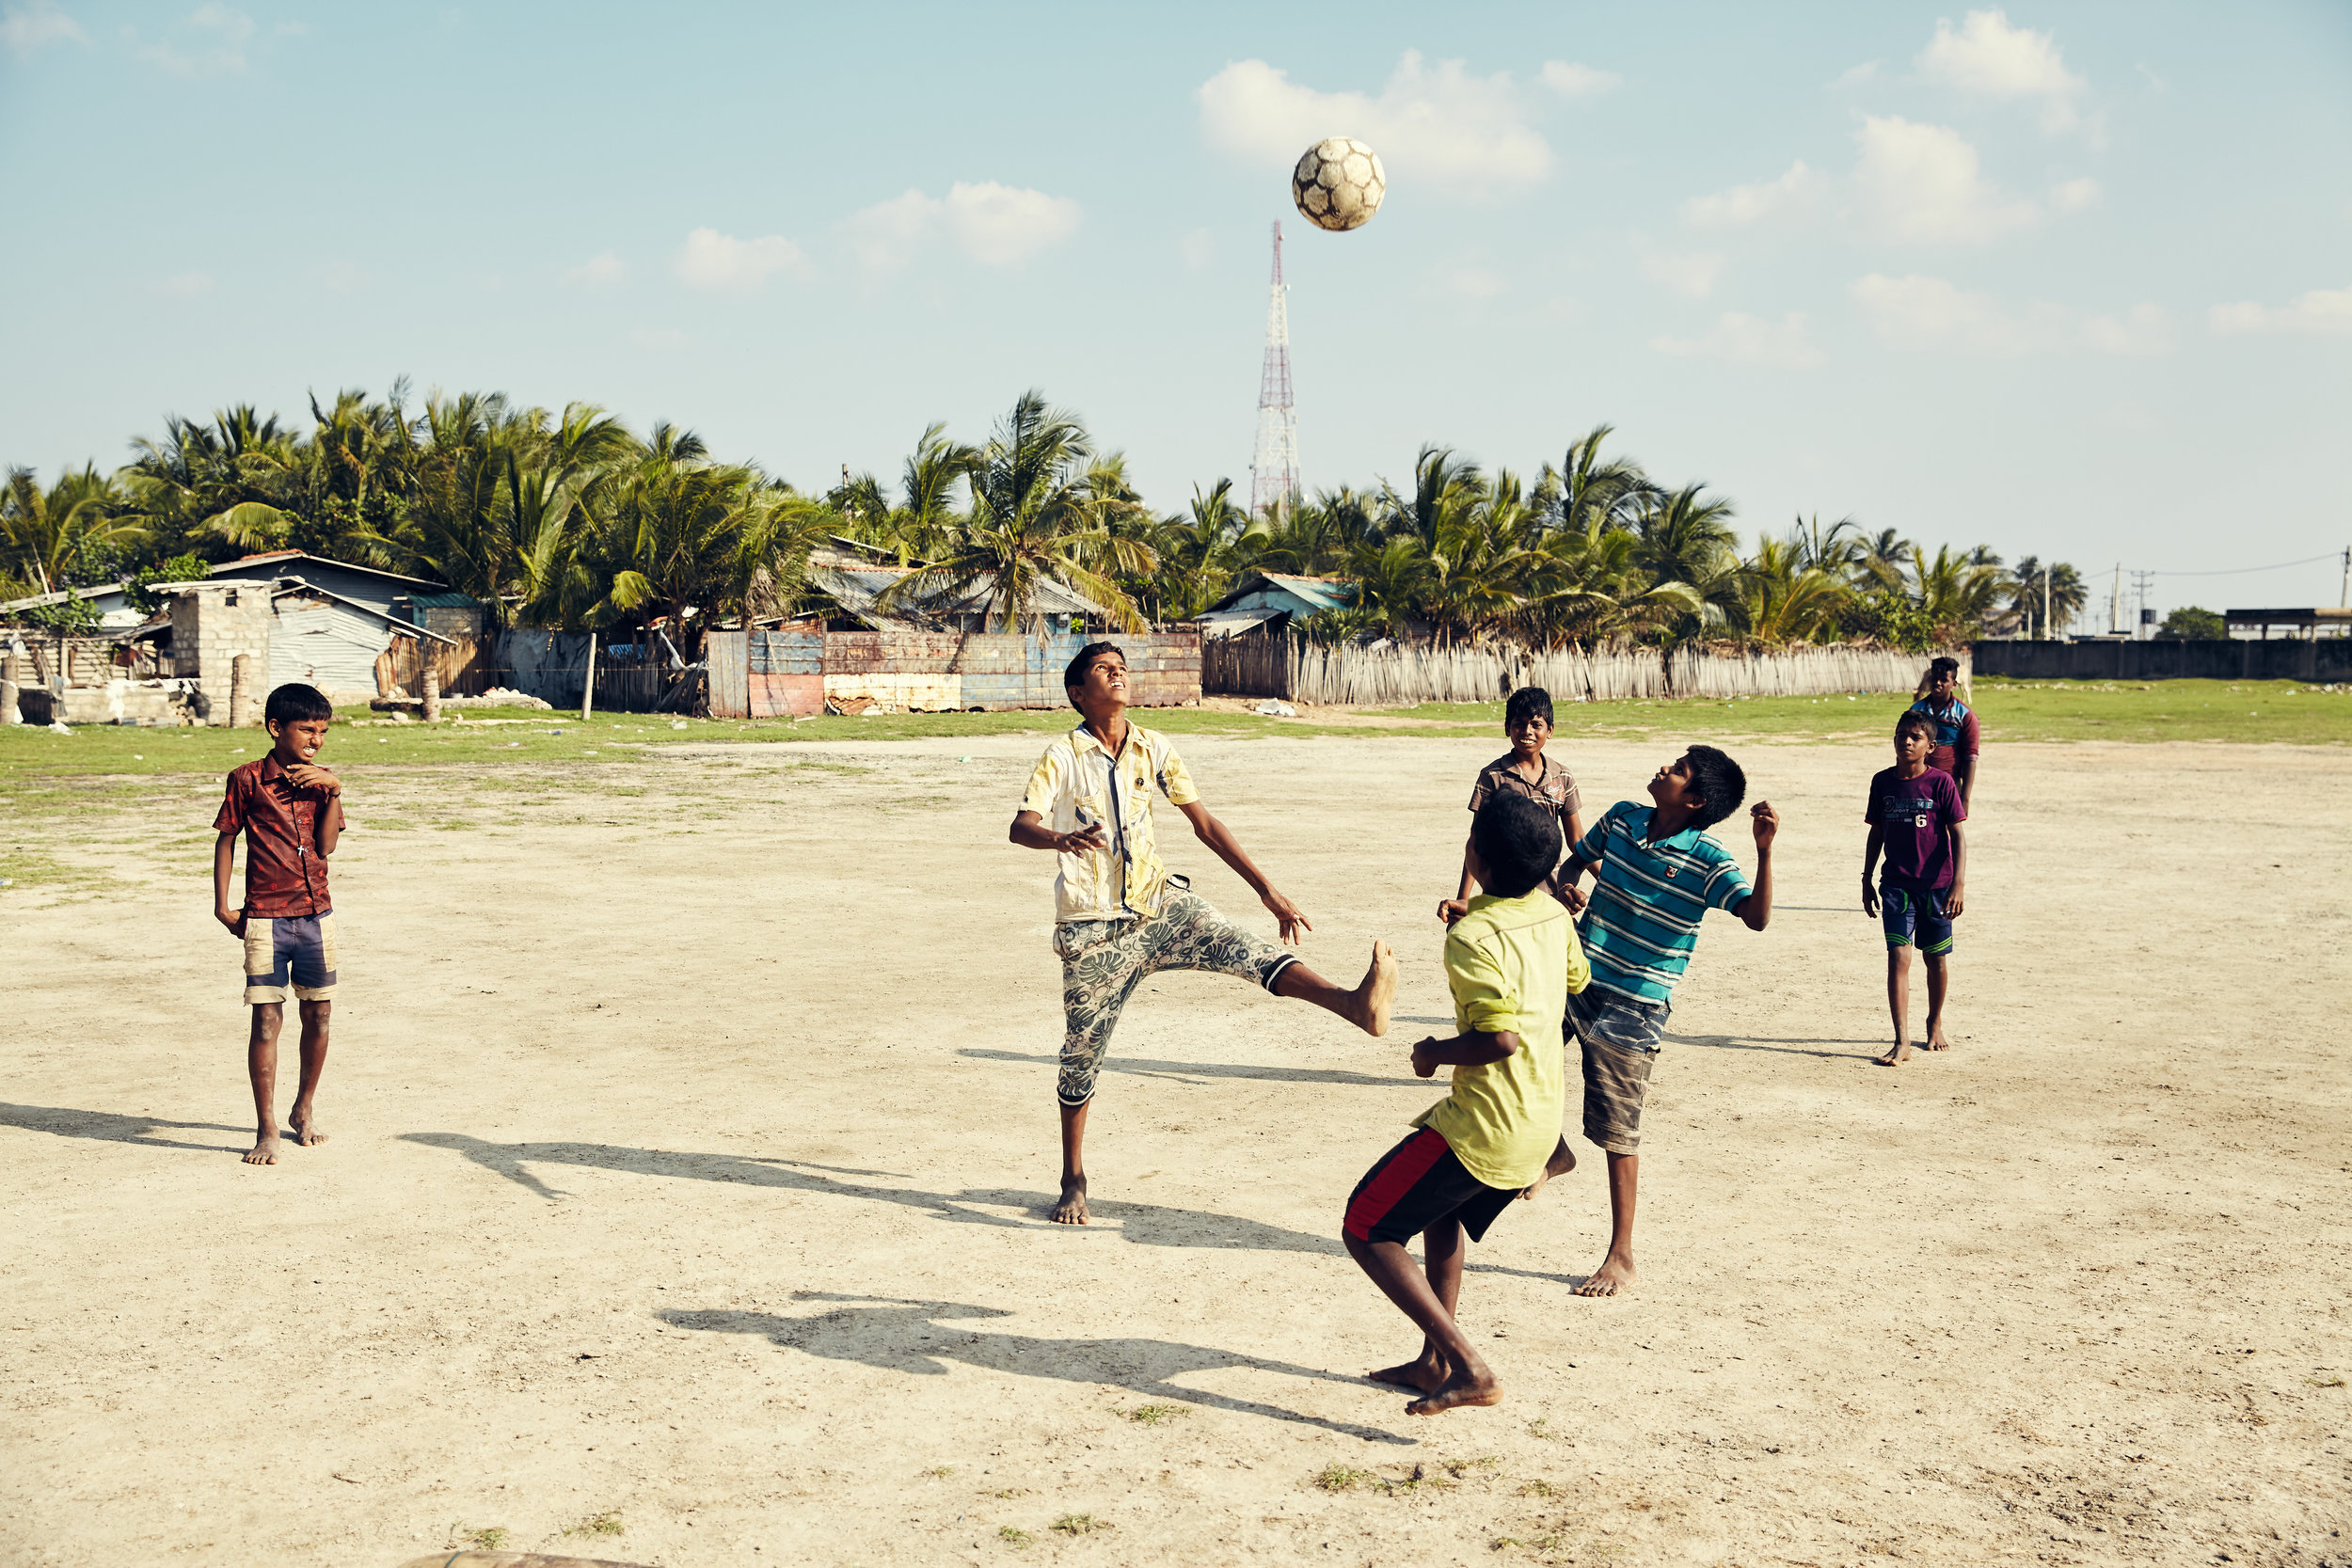 The Beautiful Game - Soccer has the power to unite people, awaken self-worth and help children cope with hardship and loss. It can empower big dreams and give the next generation a reason to pursue a more beautiful life and world.